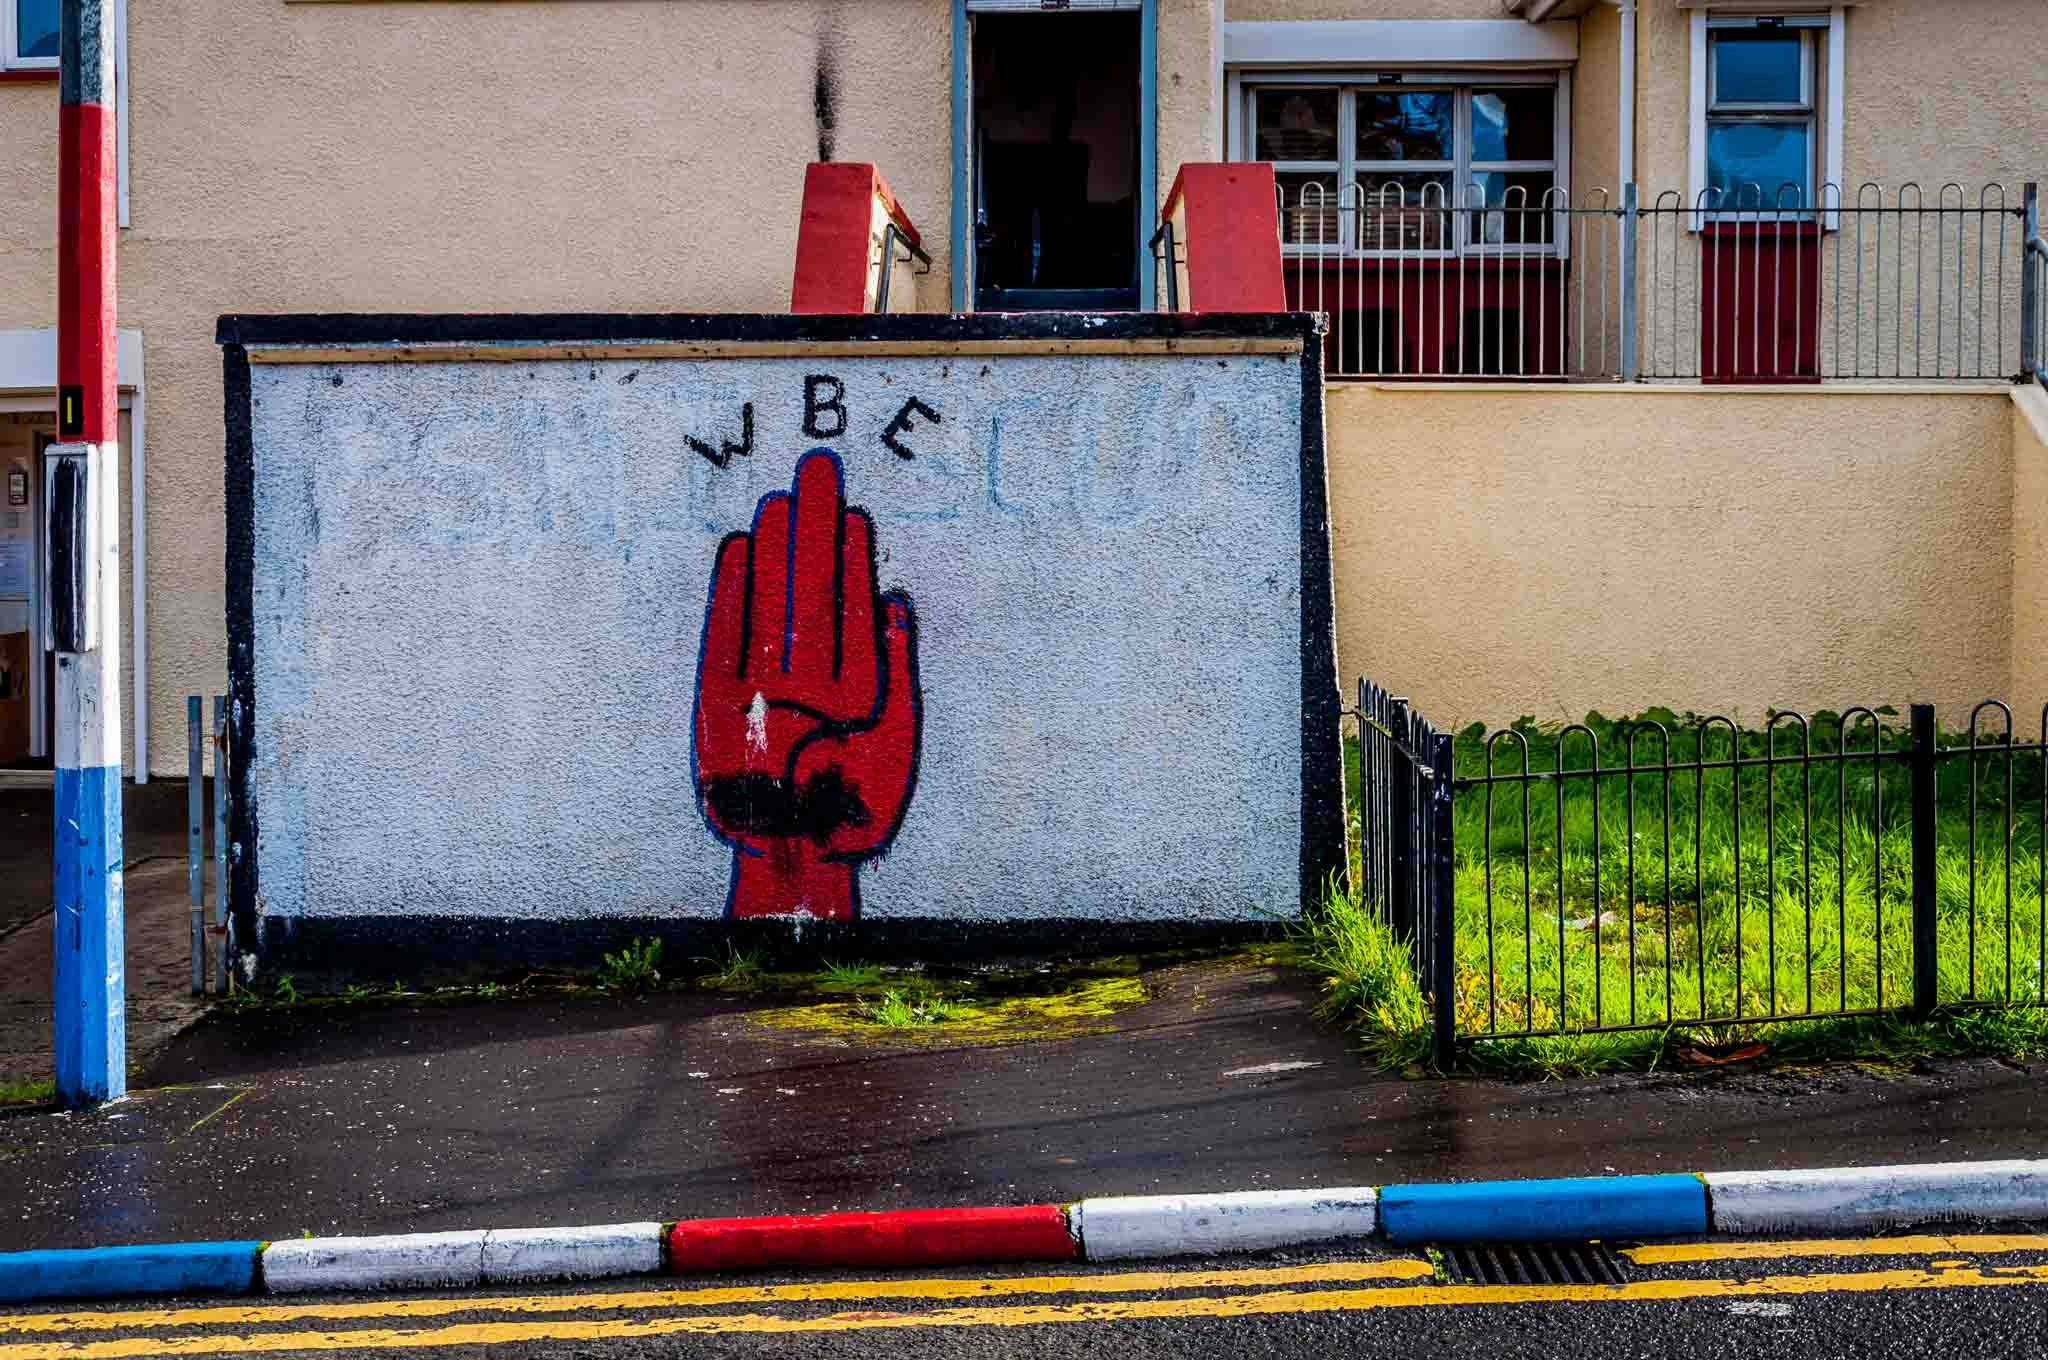 Loyalist Ulster mural of the Red Hand of Ulster